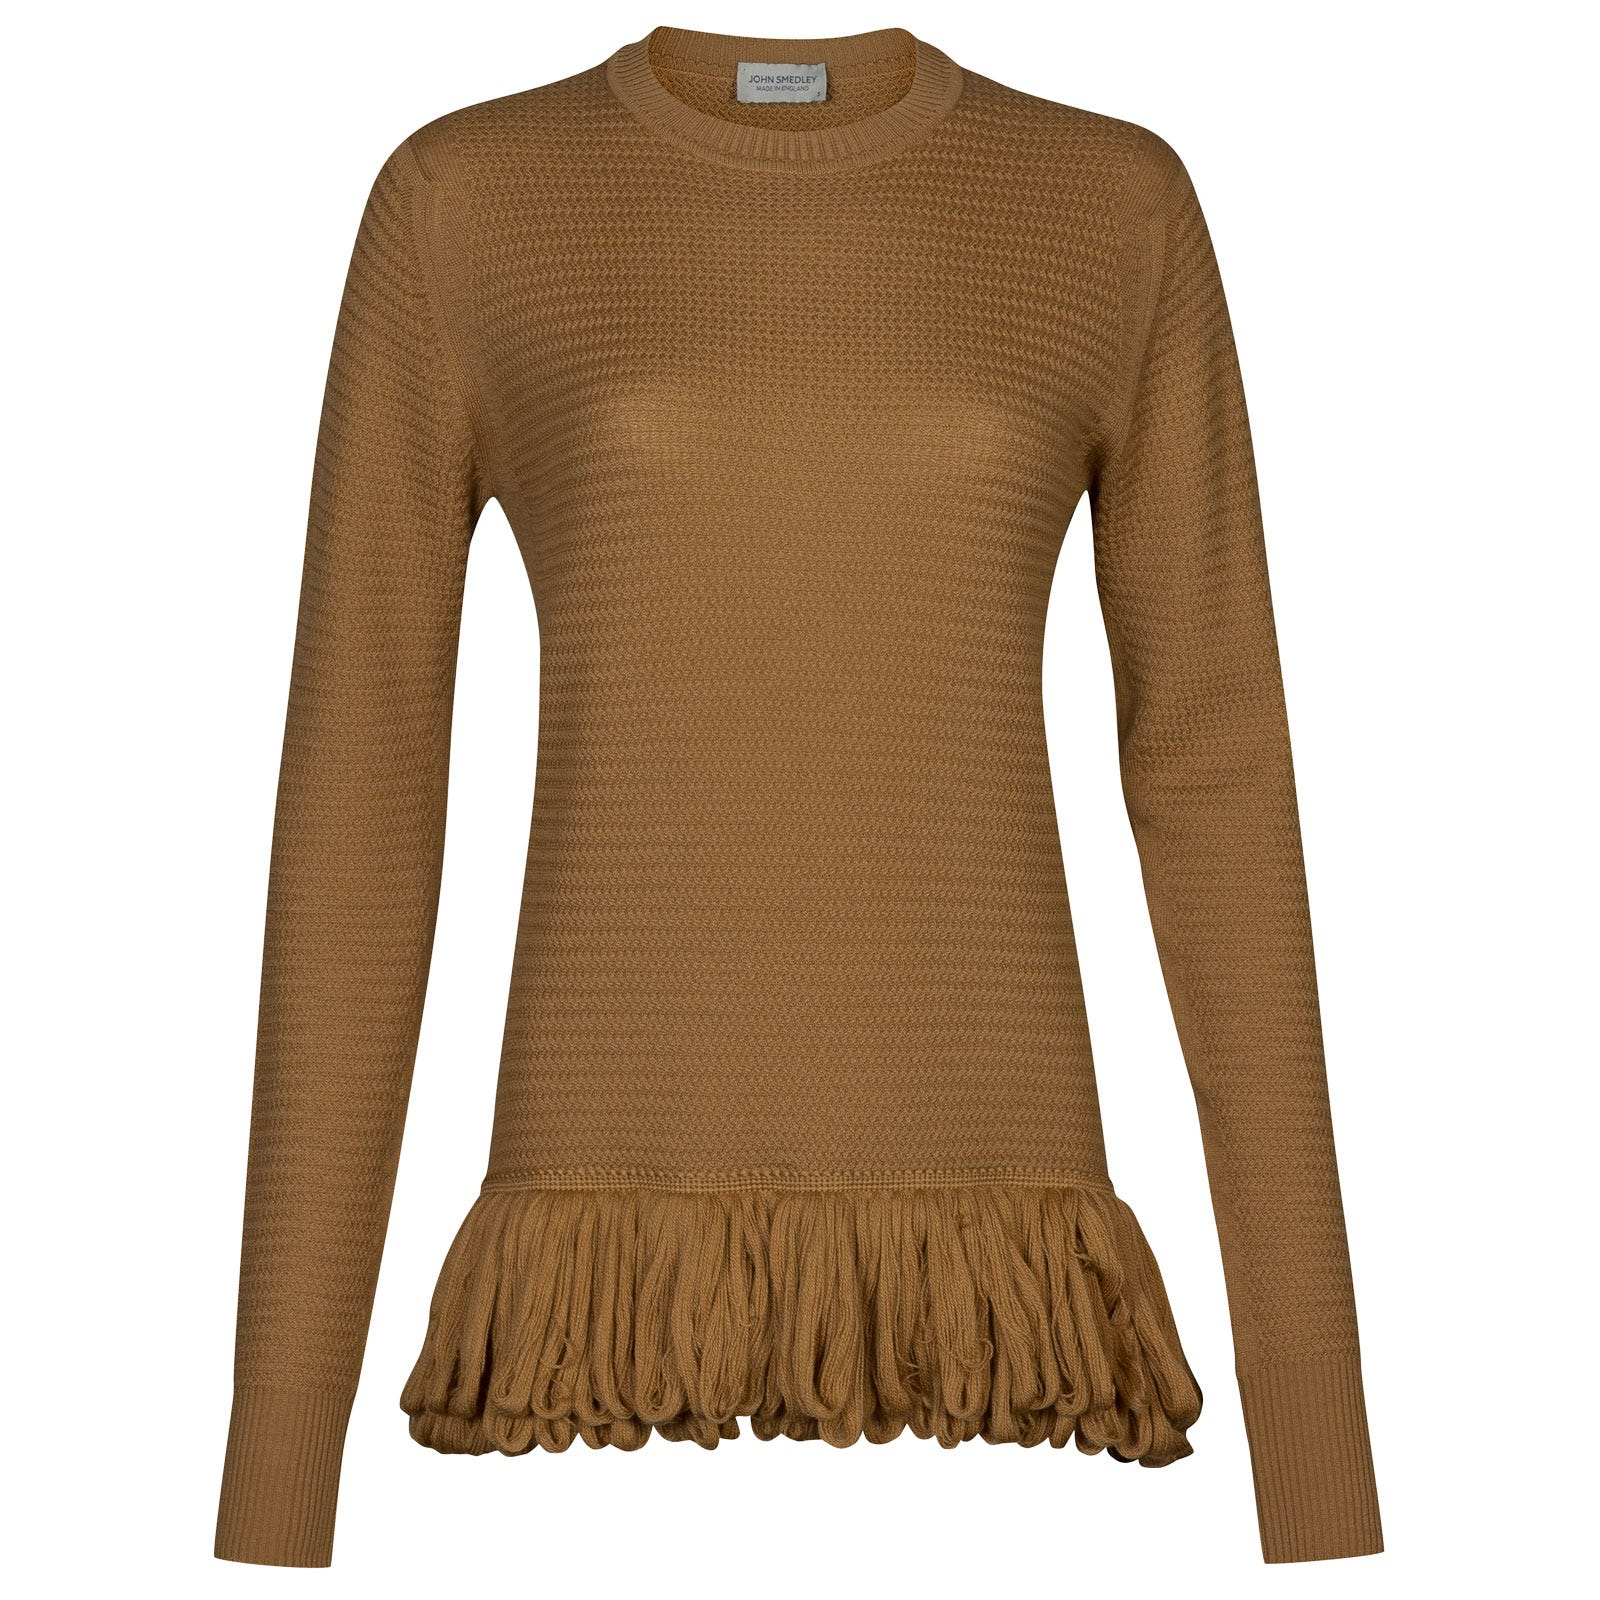 John Smedley burnet Merino Wool Sweater in Camel-S